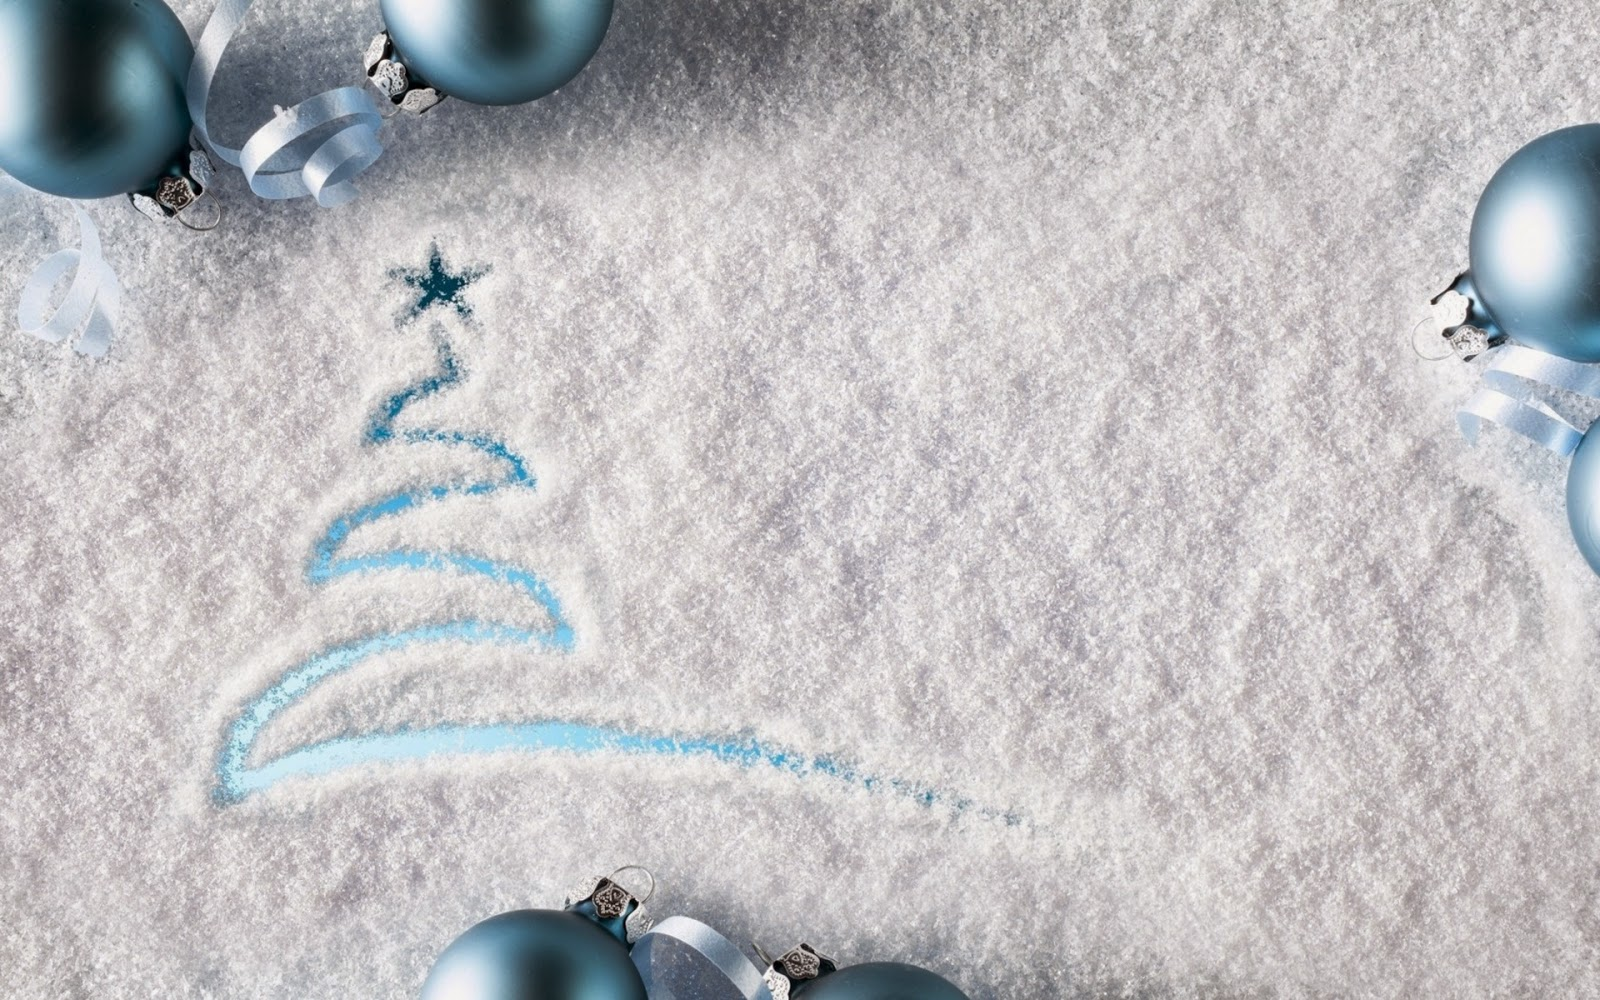 snow-ice-background-Christmas-tree-white-background-template-HD-image-without-watermark-free-download.jpg